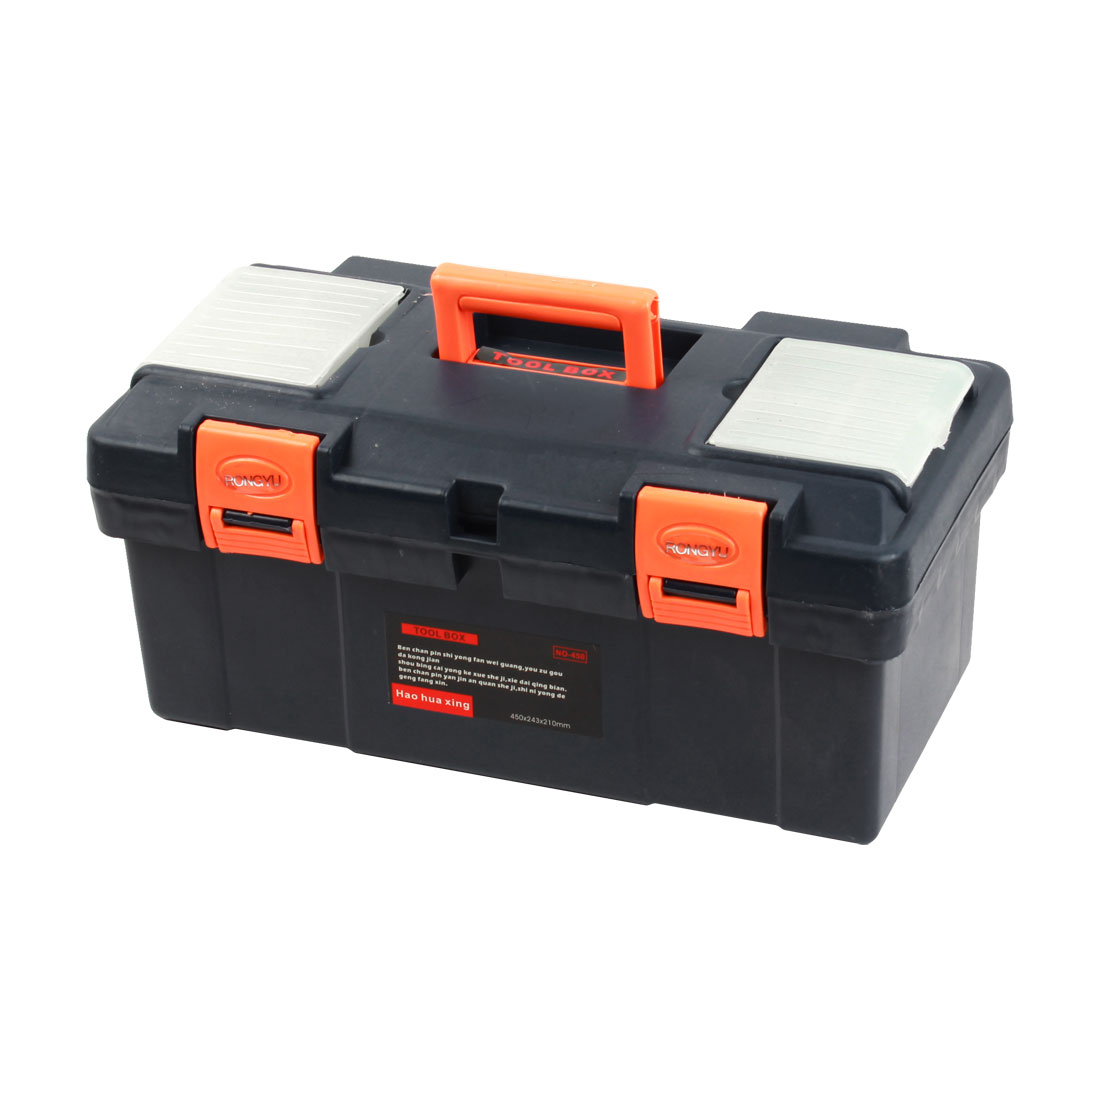 Electrician Plastic 2 Layers Tools Hardware Storage Box Navy Blue Orange